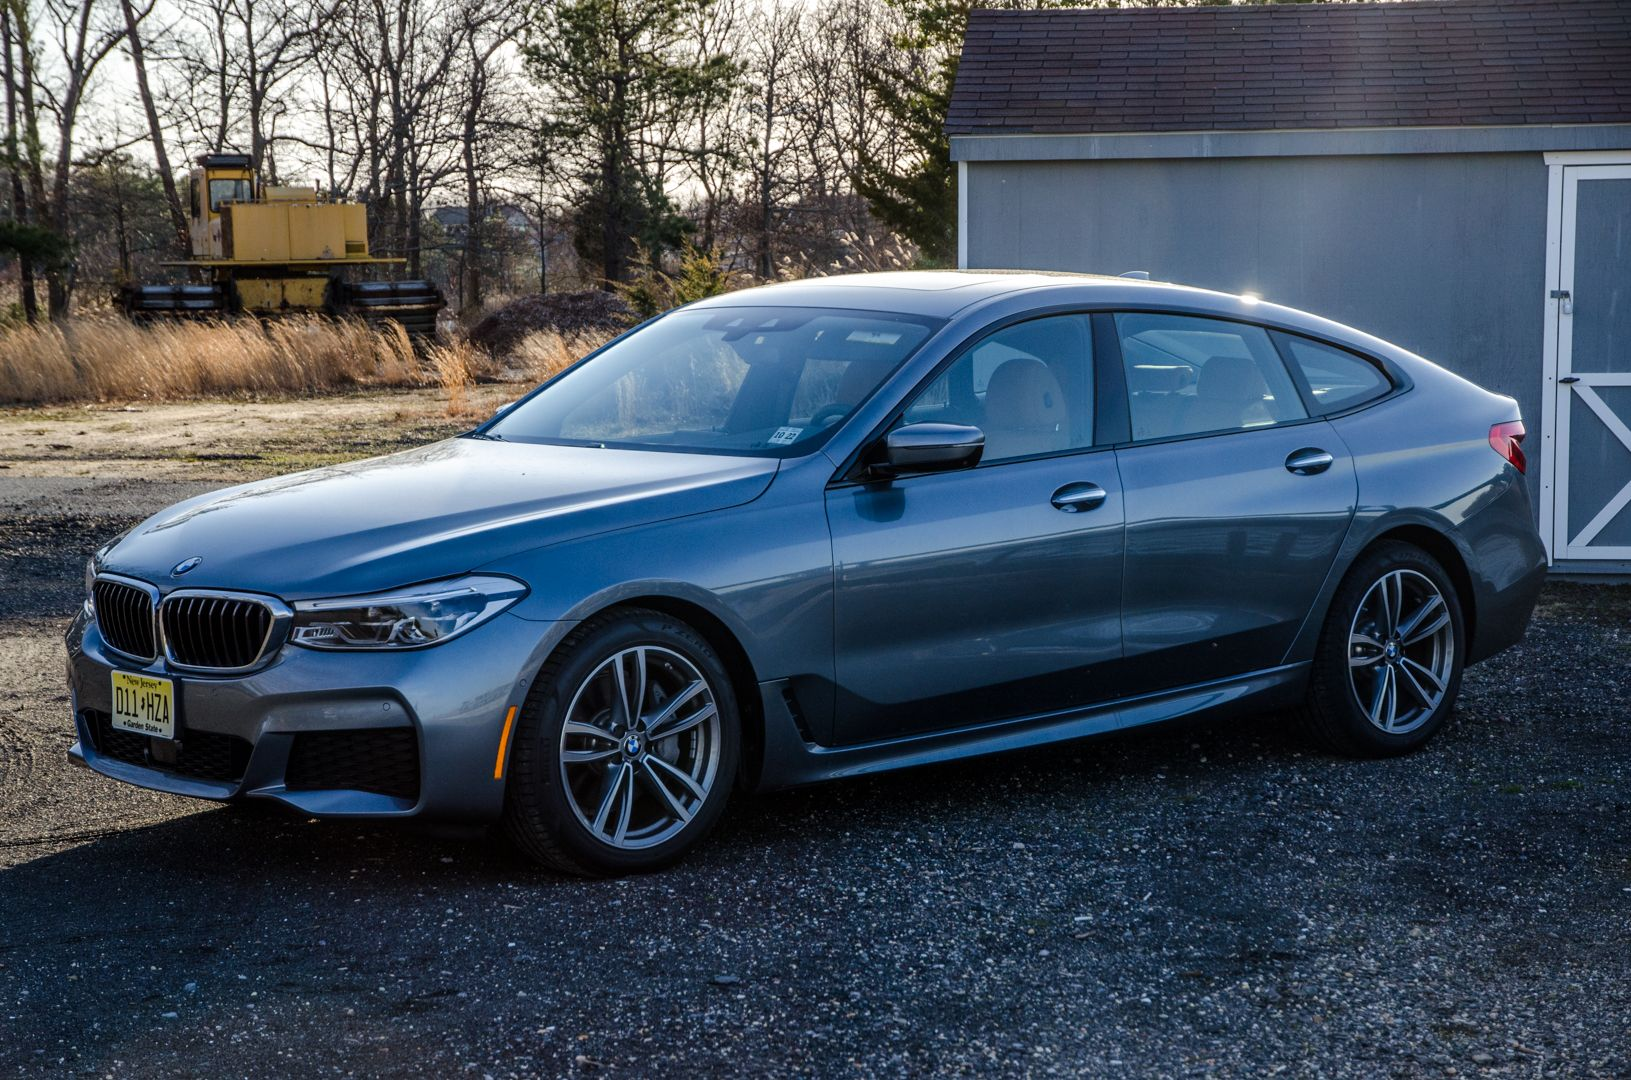 Bmw 6 Series Gt Review By Left Lane Bmw 6 Series Bmw Cars New Bmw